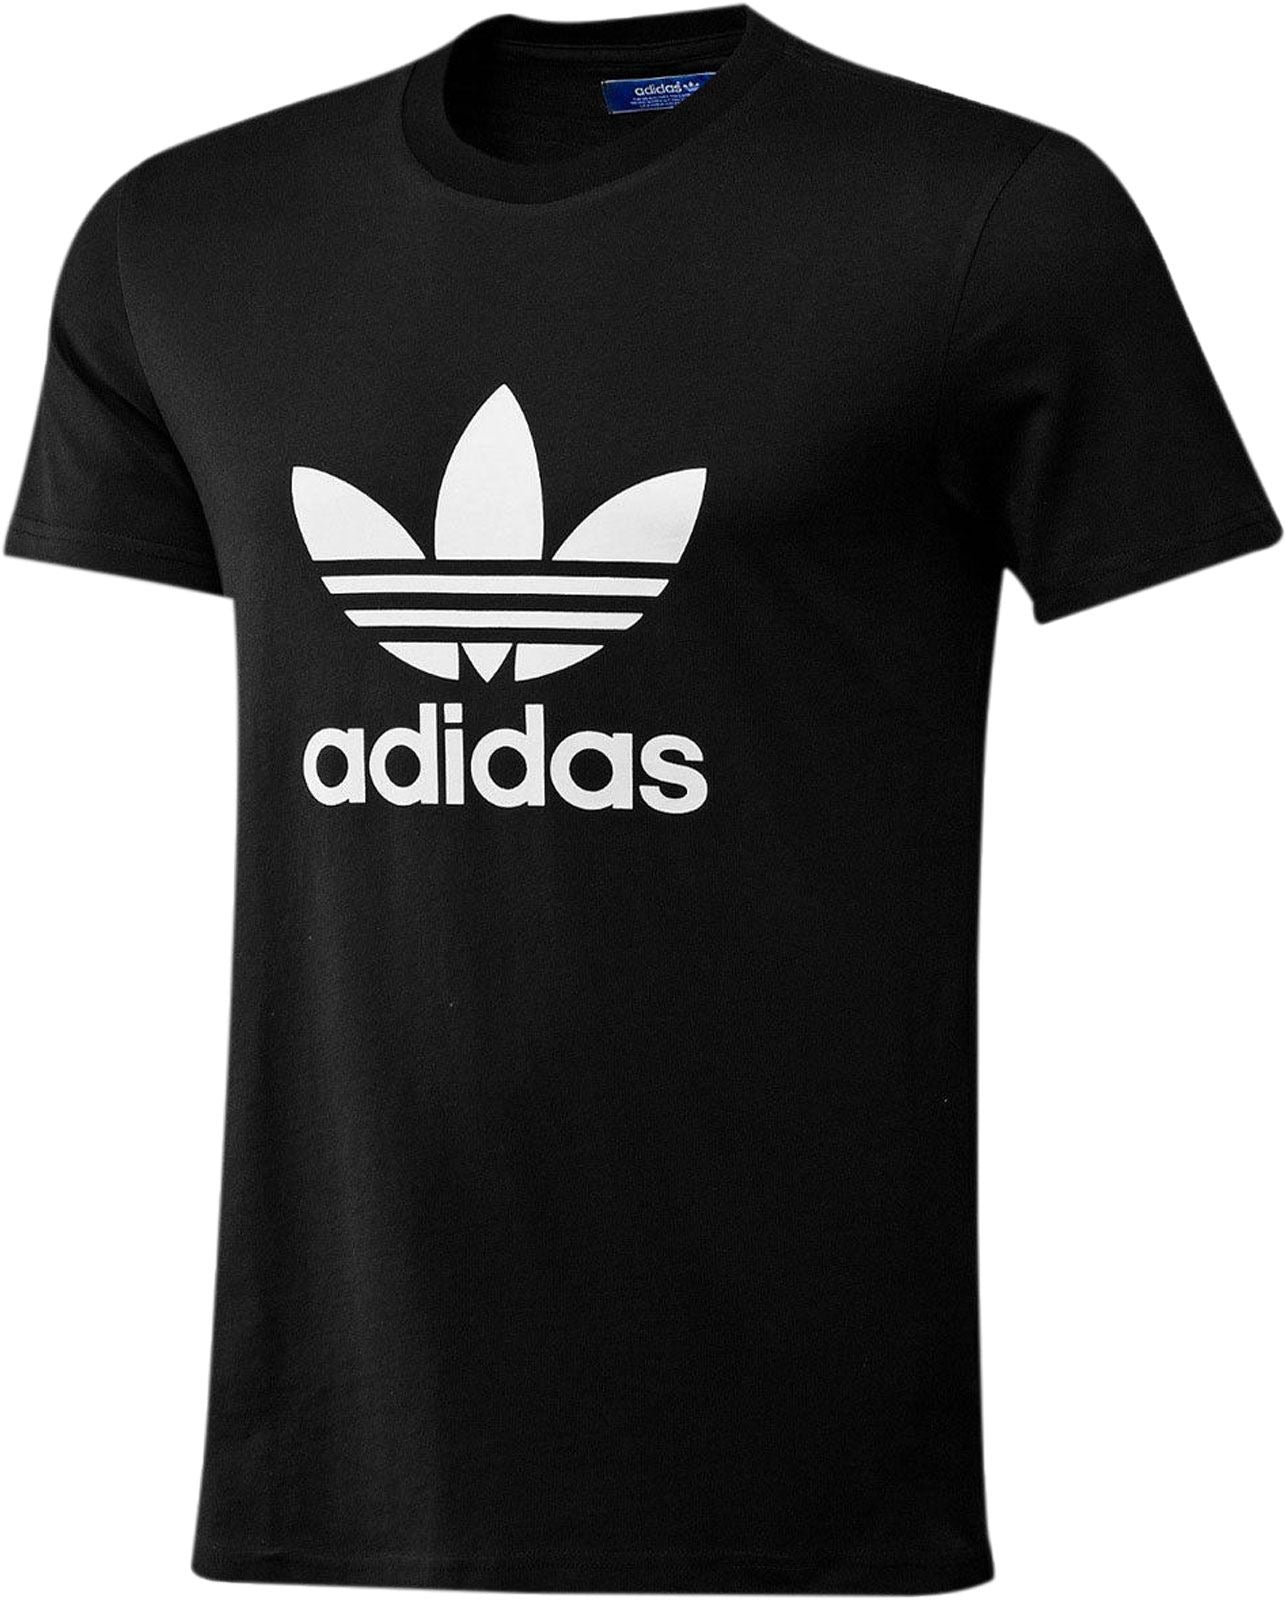 Adidas Originals Trefoil Tee Crew Neck Cotton Casual T-Shirt All Size S M L XL BLACK